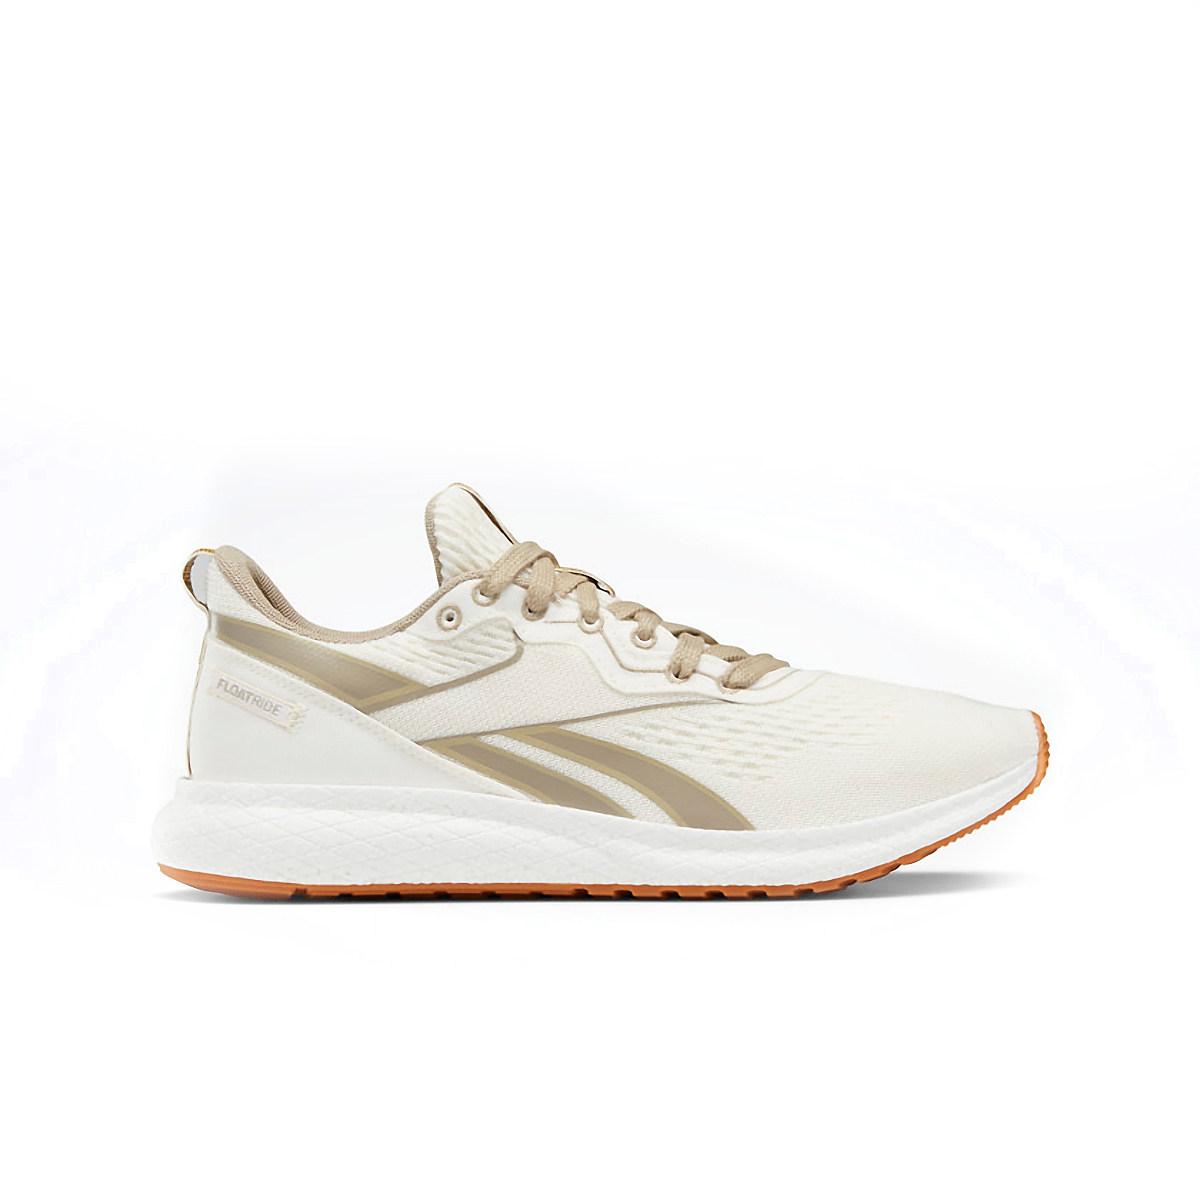 Women's Reebok Forever Floatride Grow Running Shoe - Color: Classic White/Straw/Super Neutral - Size: 5 - Width: Regular, Classic White/Straw/Super Neutral, large, image 1